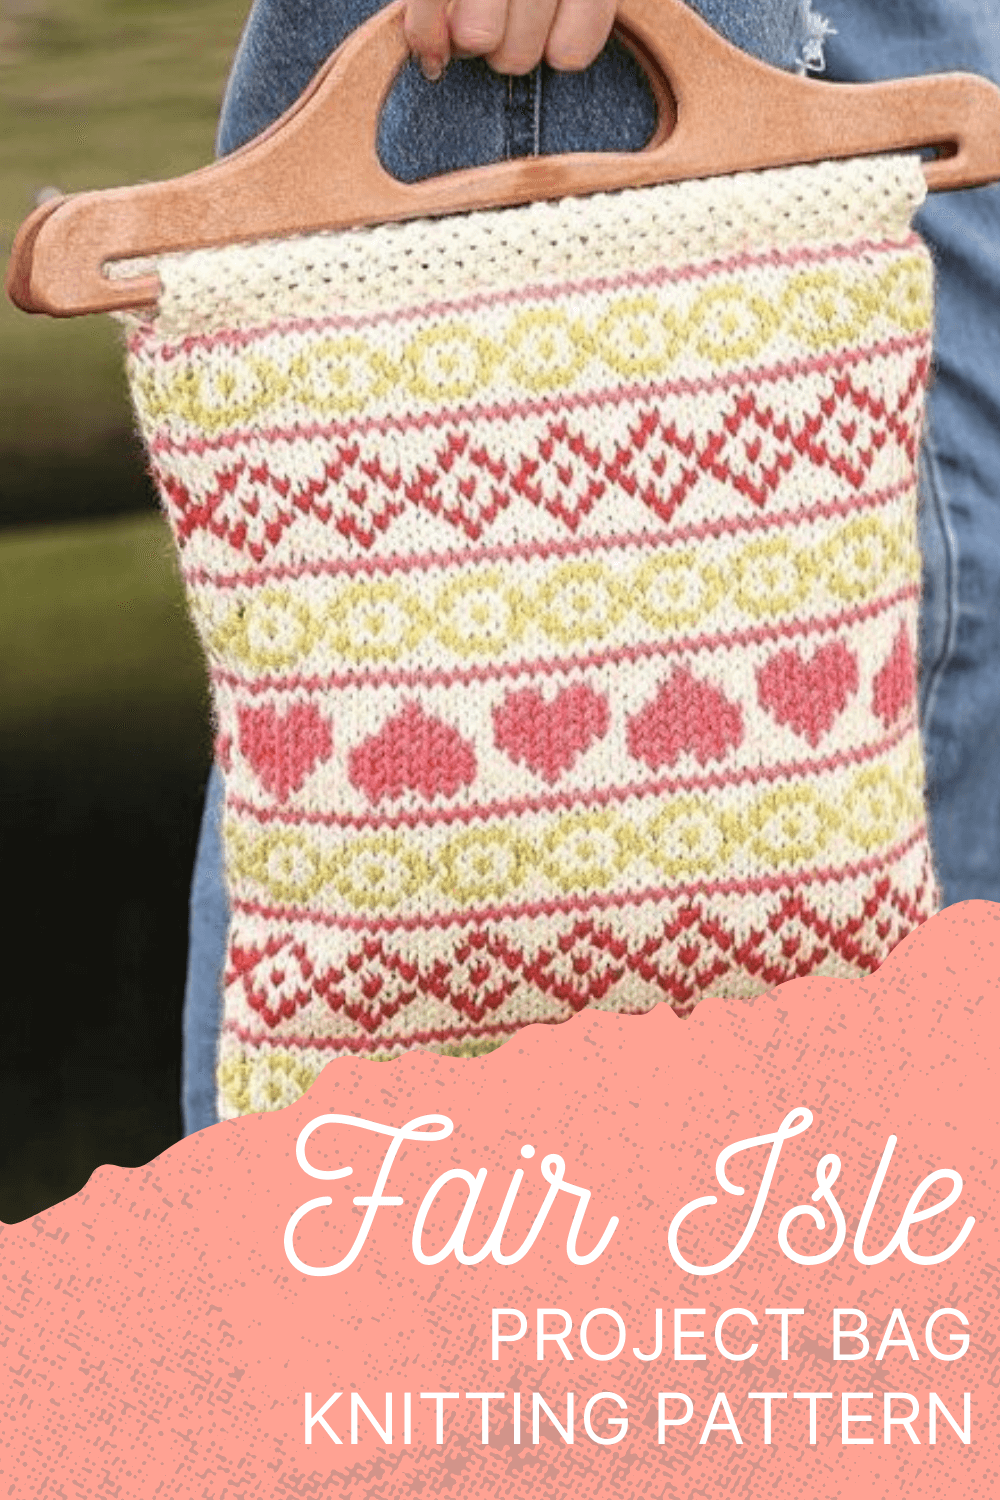 Knit your own knitting project bag with the Fair Isle bag knitting pattern designed by Sian Brown